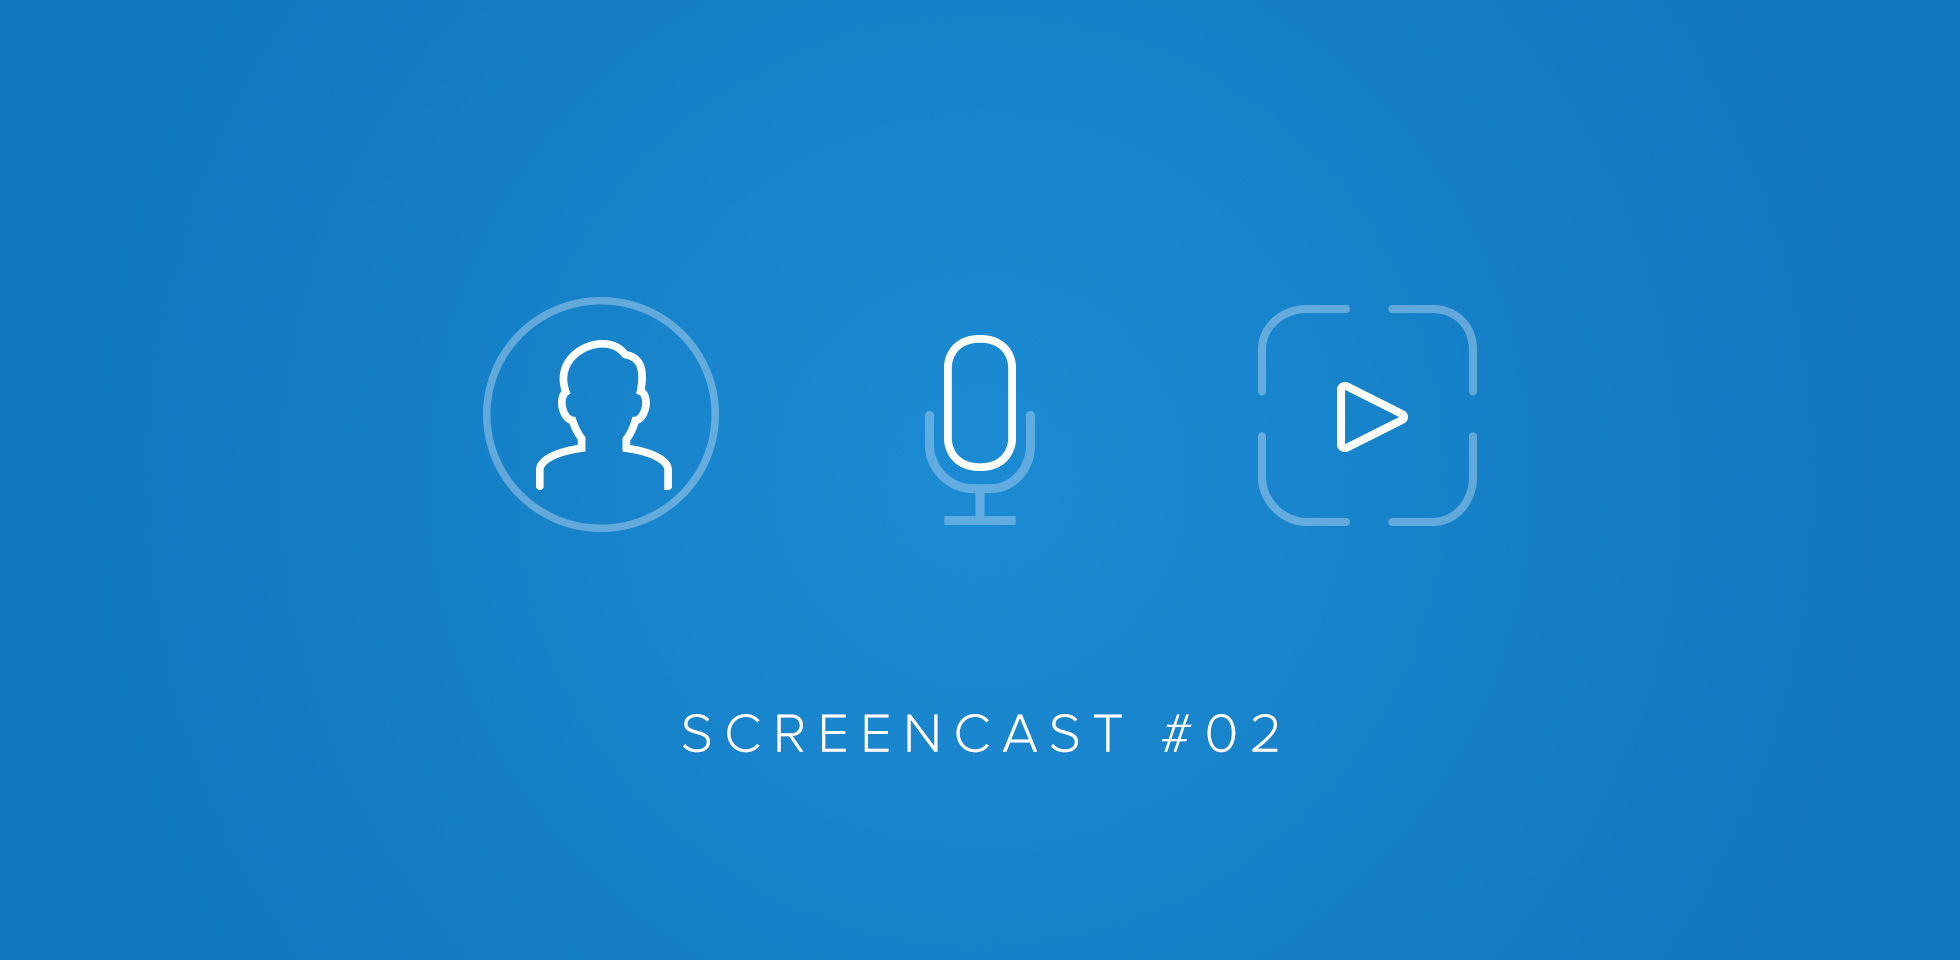 Screencast #02 - Extending Pagekit using Modules